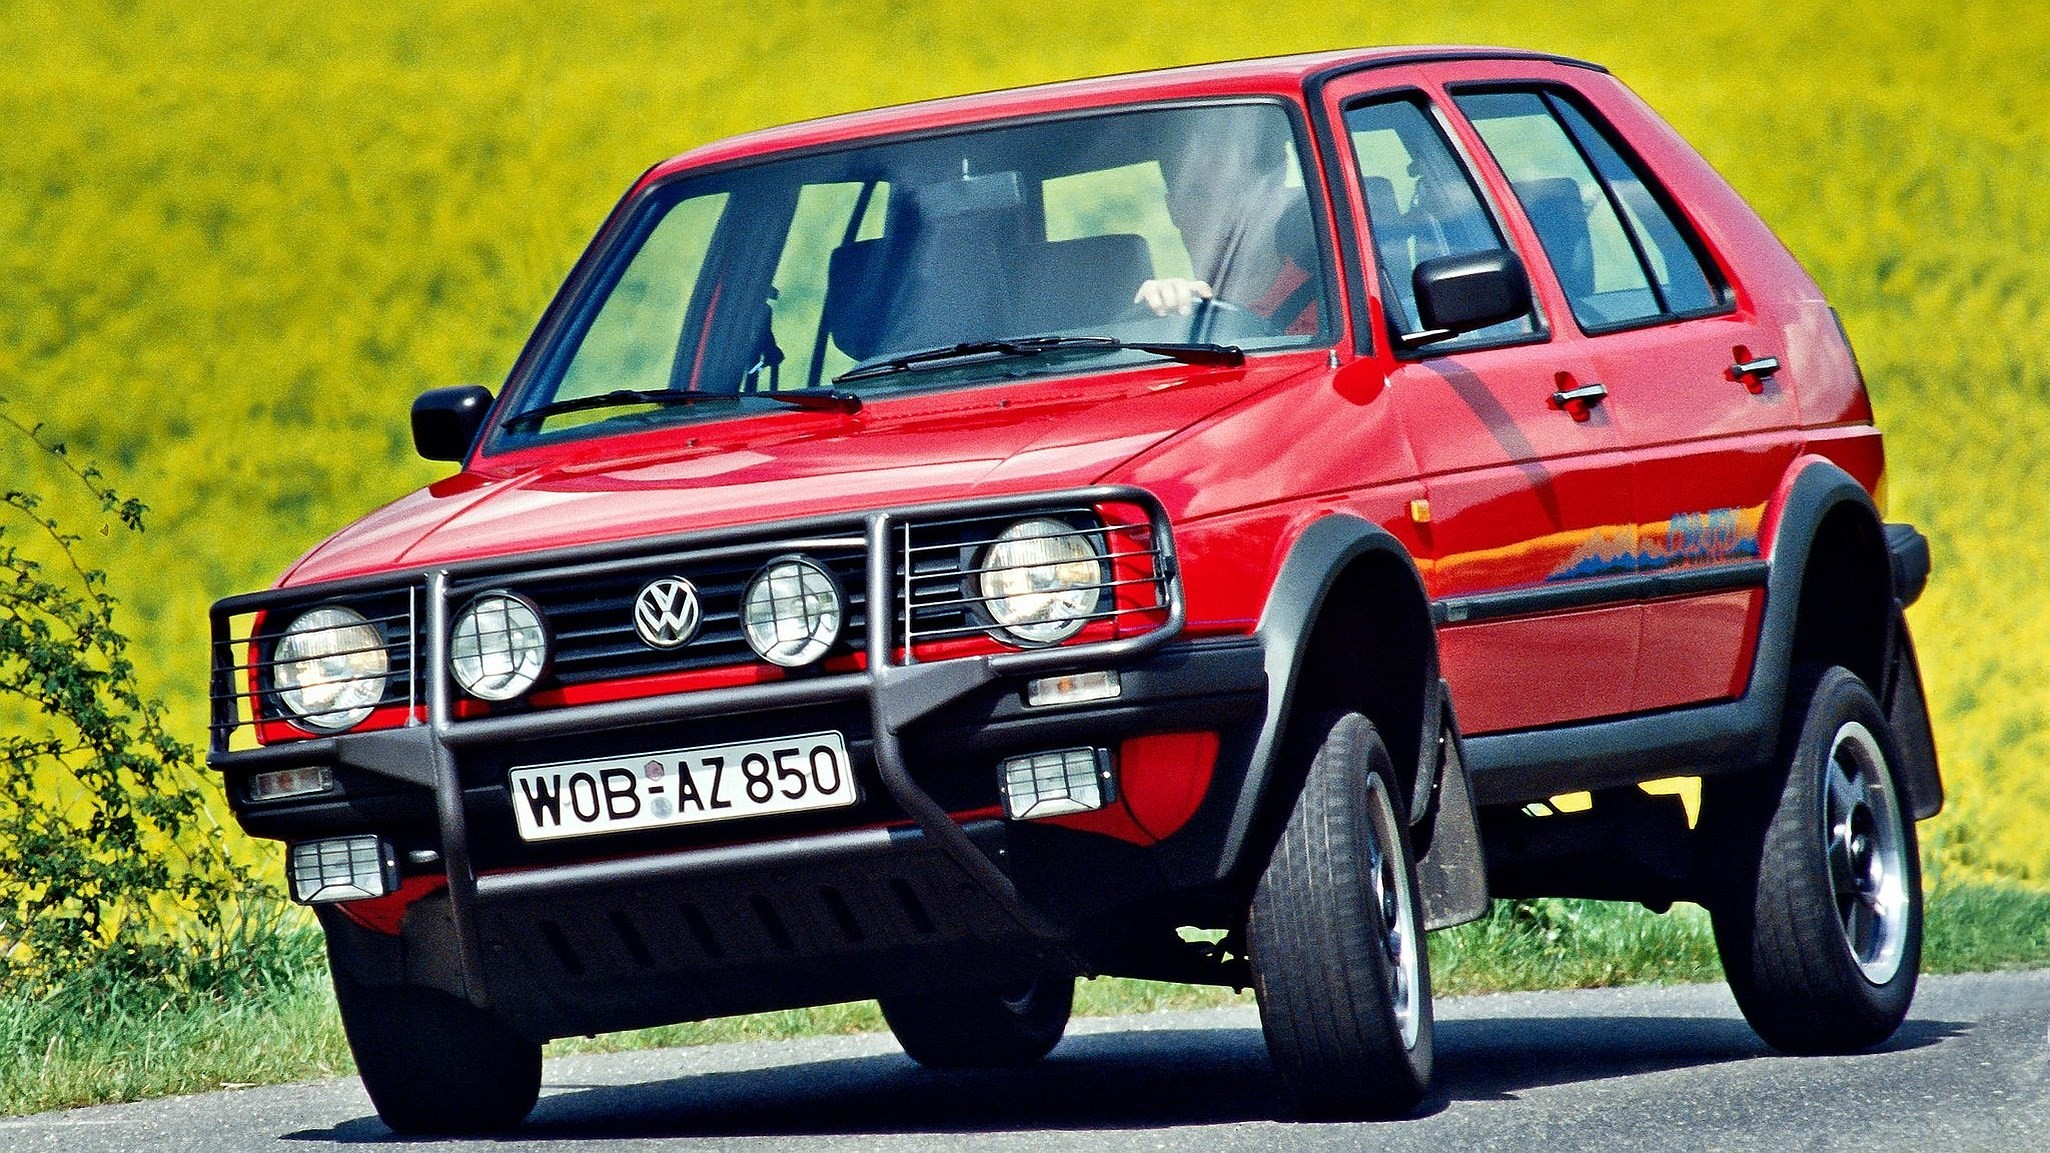 #1988415, volkswagen golf ii category – free wallpaper and screensavers for  volkswagen golf ii